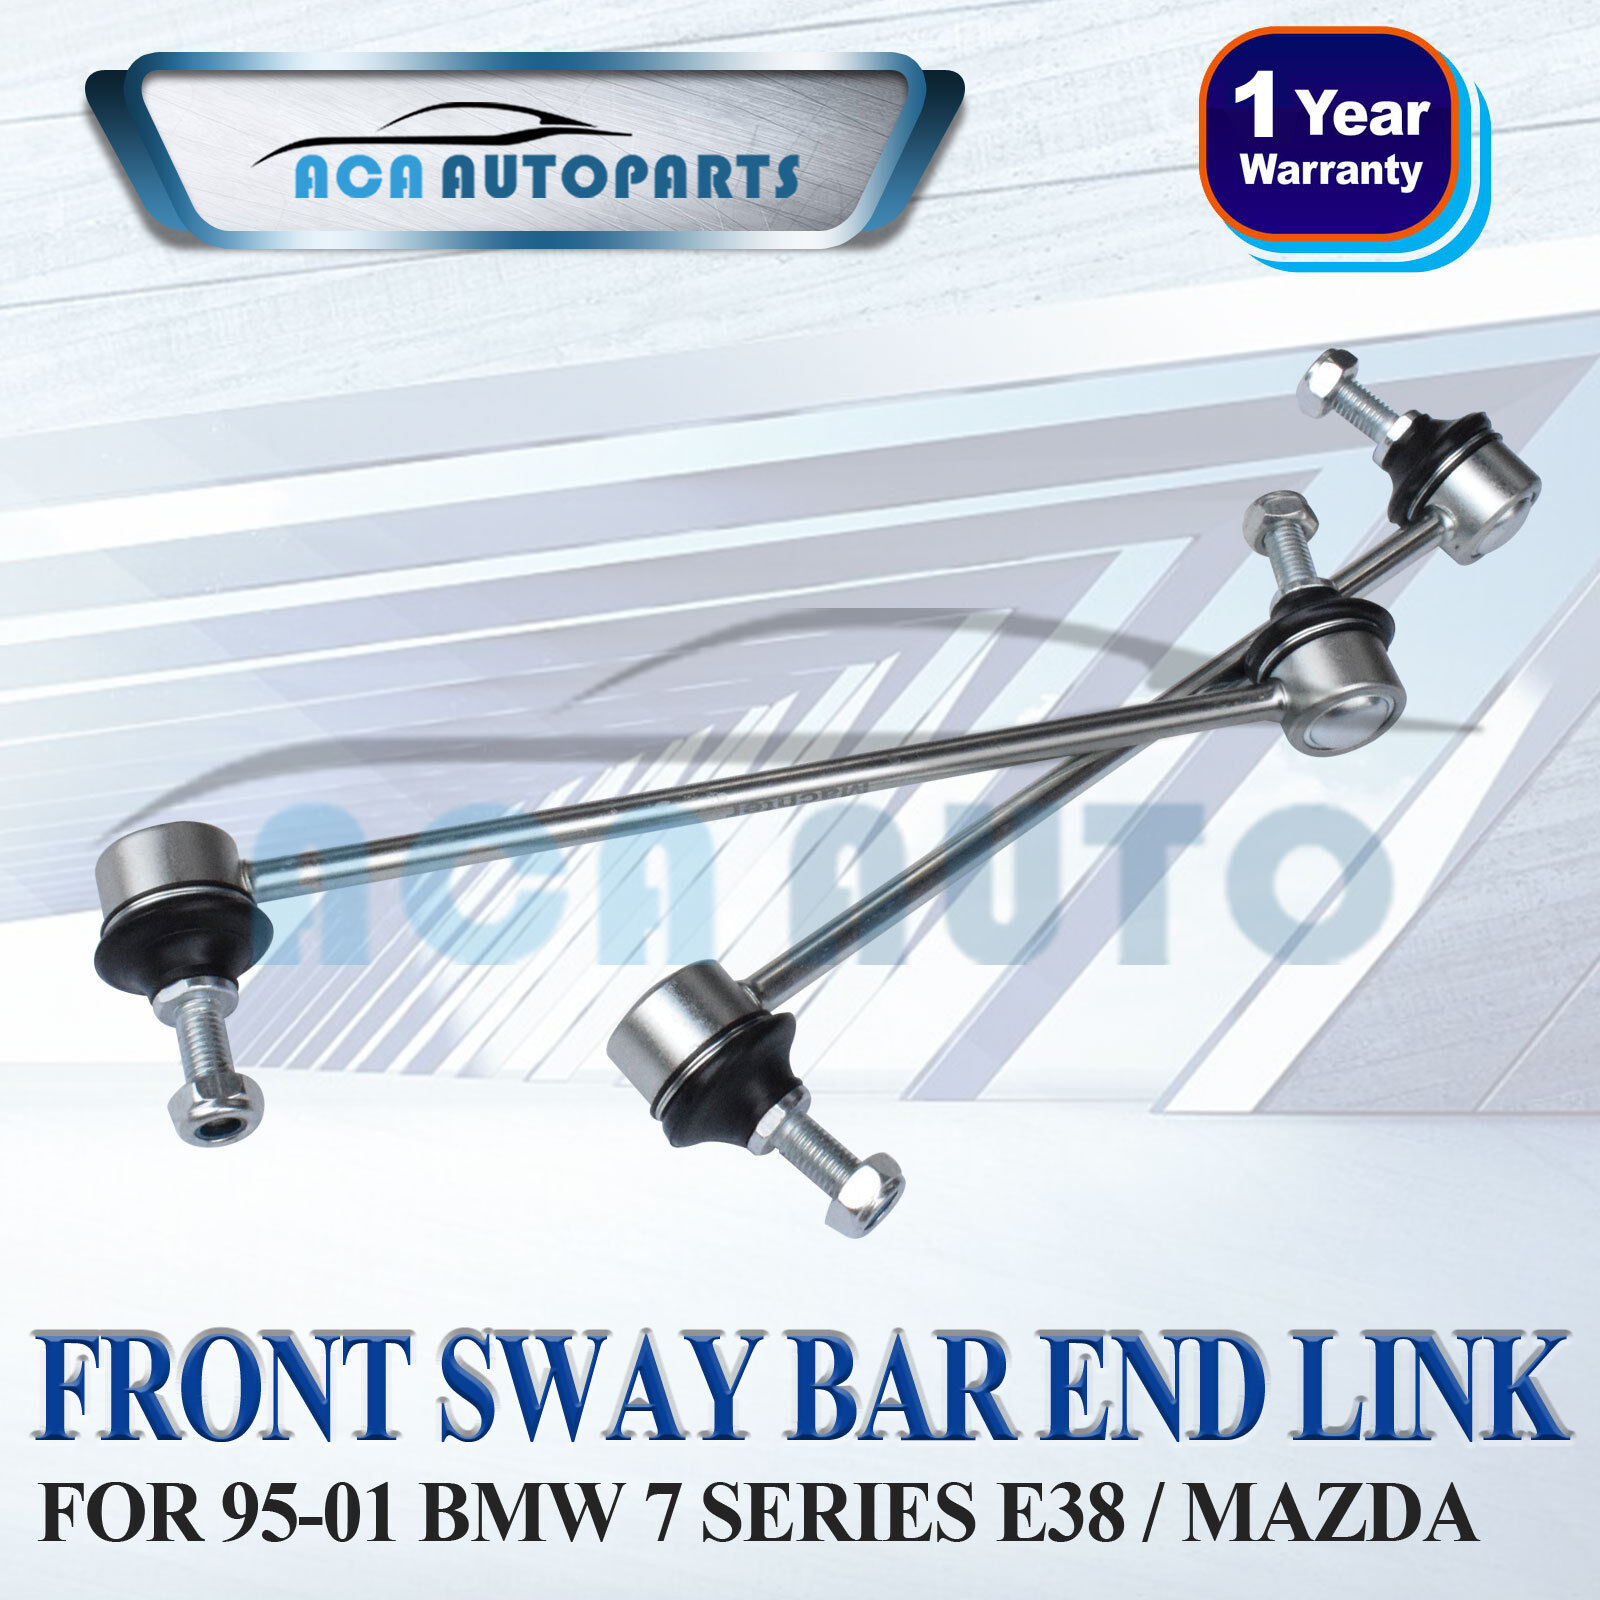 Front Sway Bar End Link Suspension Pair Set For 95-01 BMW